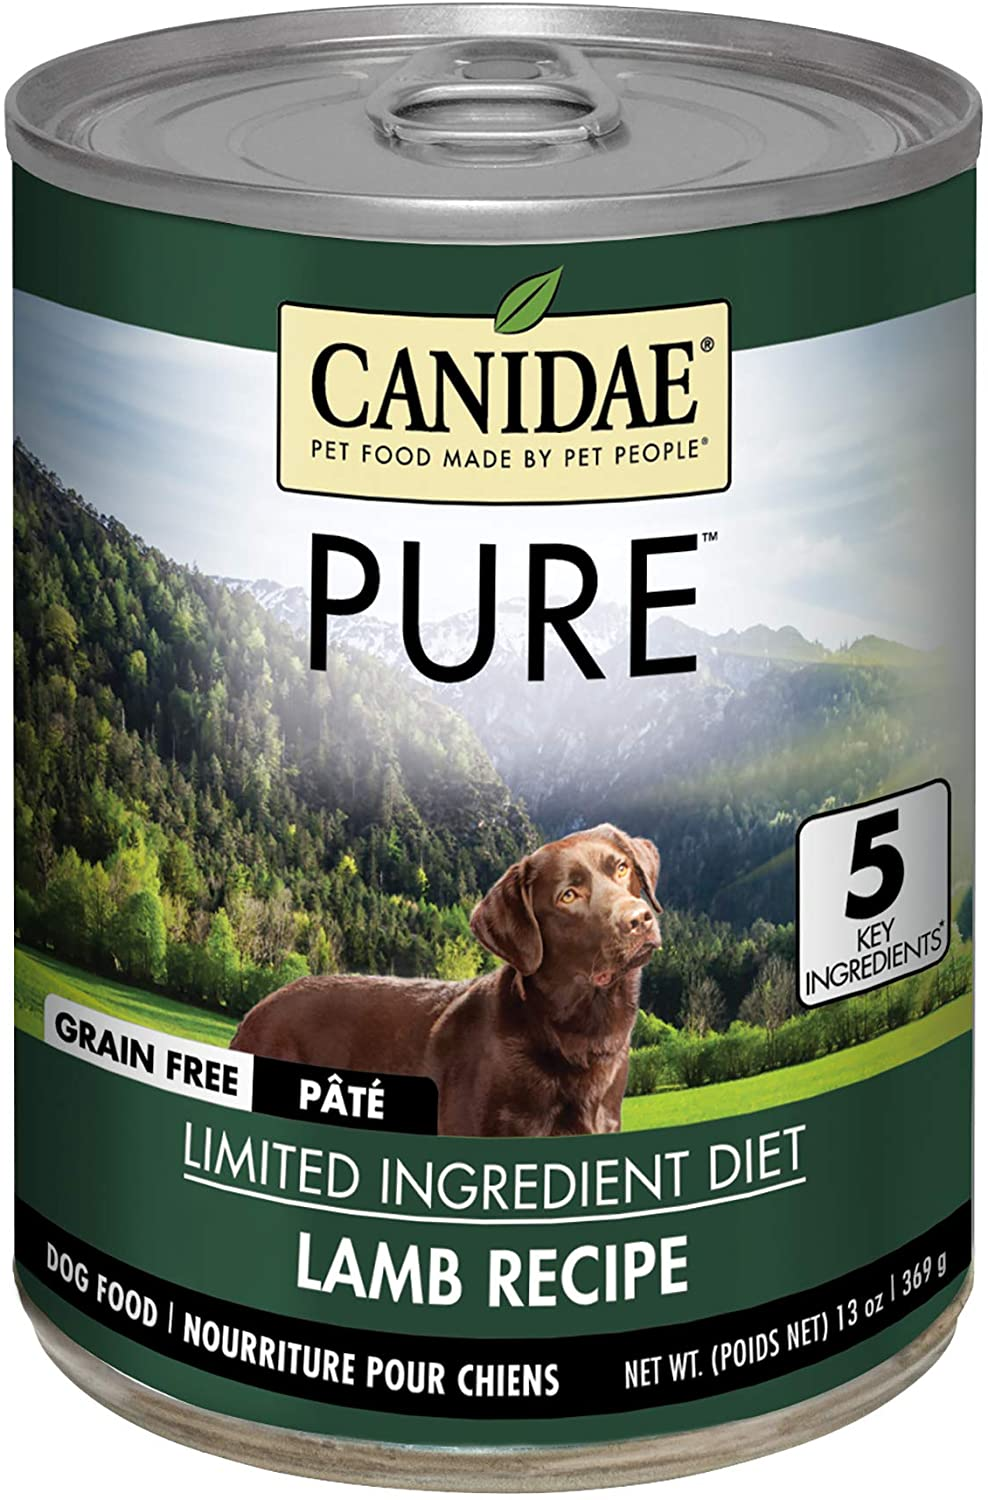 Canidae Grain Free PURE Canned Formula Dog Food With Lamb, 13 oz